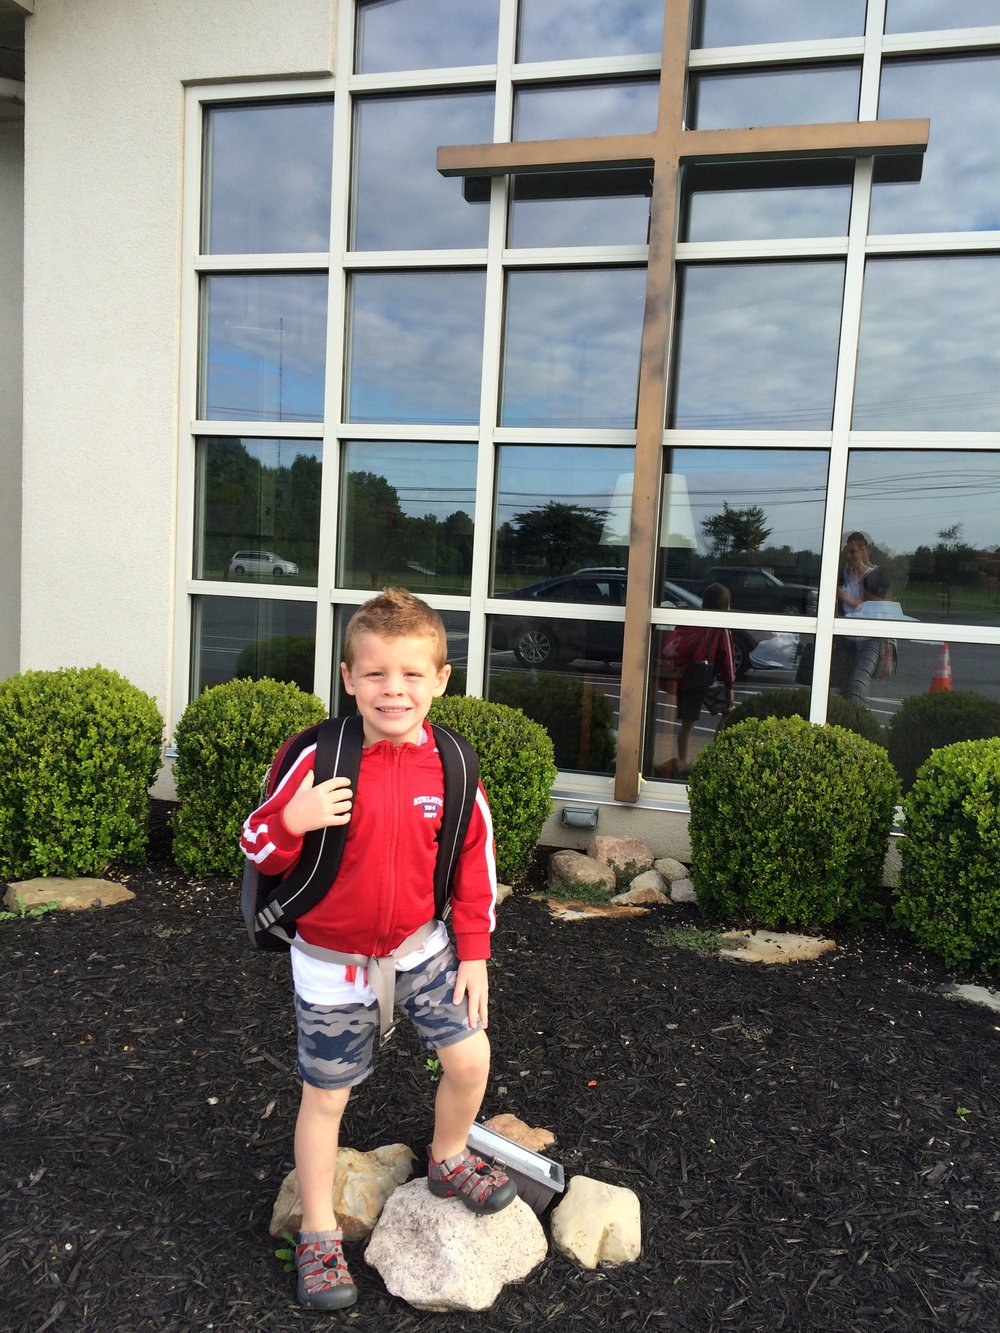 All The Children of the world academyWESTERVILLE, OHIO -